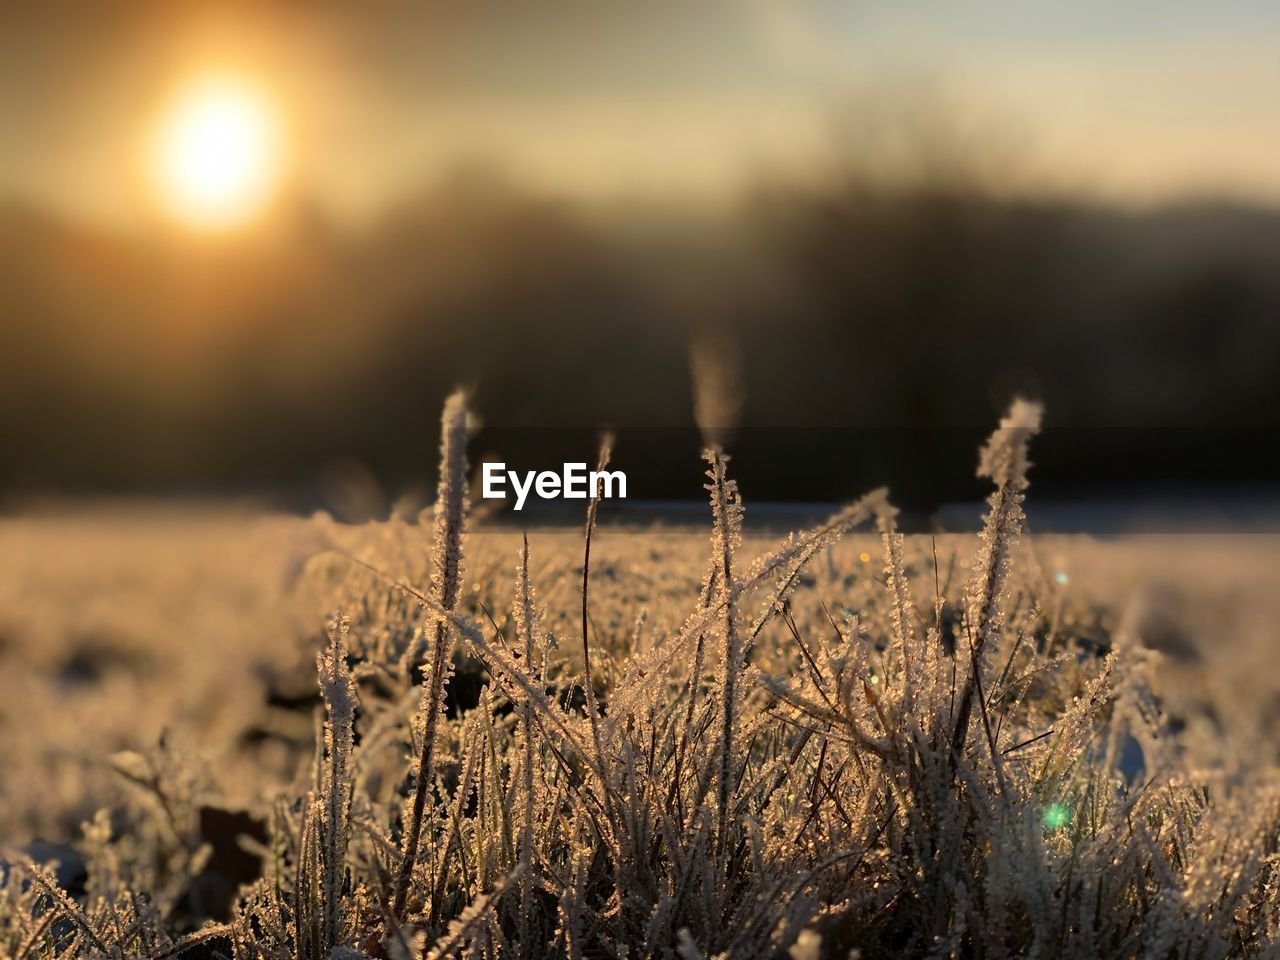 plant, tranquility, field, growth, nature, focus on foreground, close-up, beauty in nature, land, cold temperature, no people, winter, snow, selective focus, outdoors, day, sunset, sky, frozen, grass